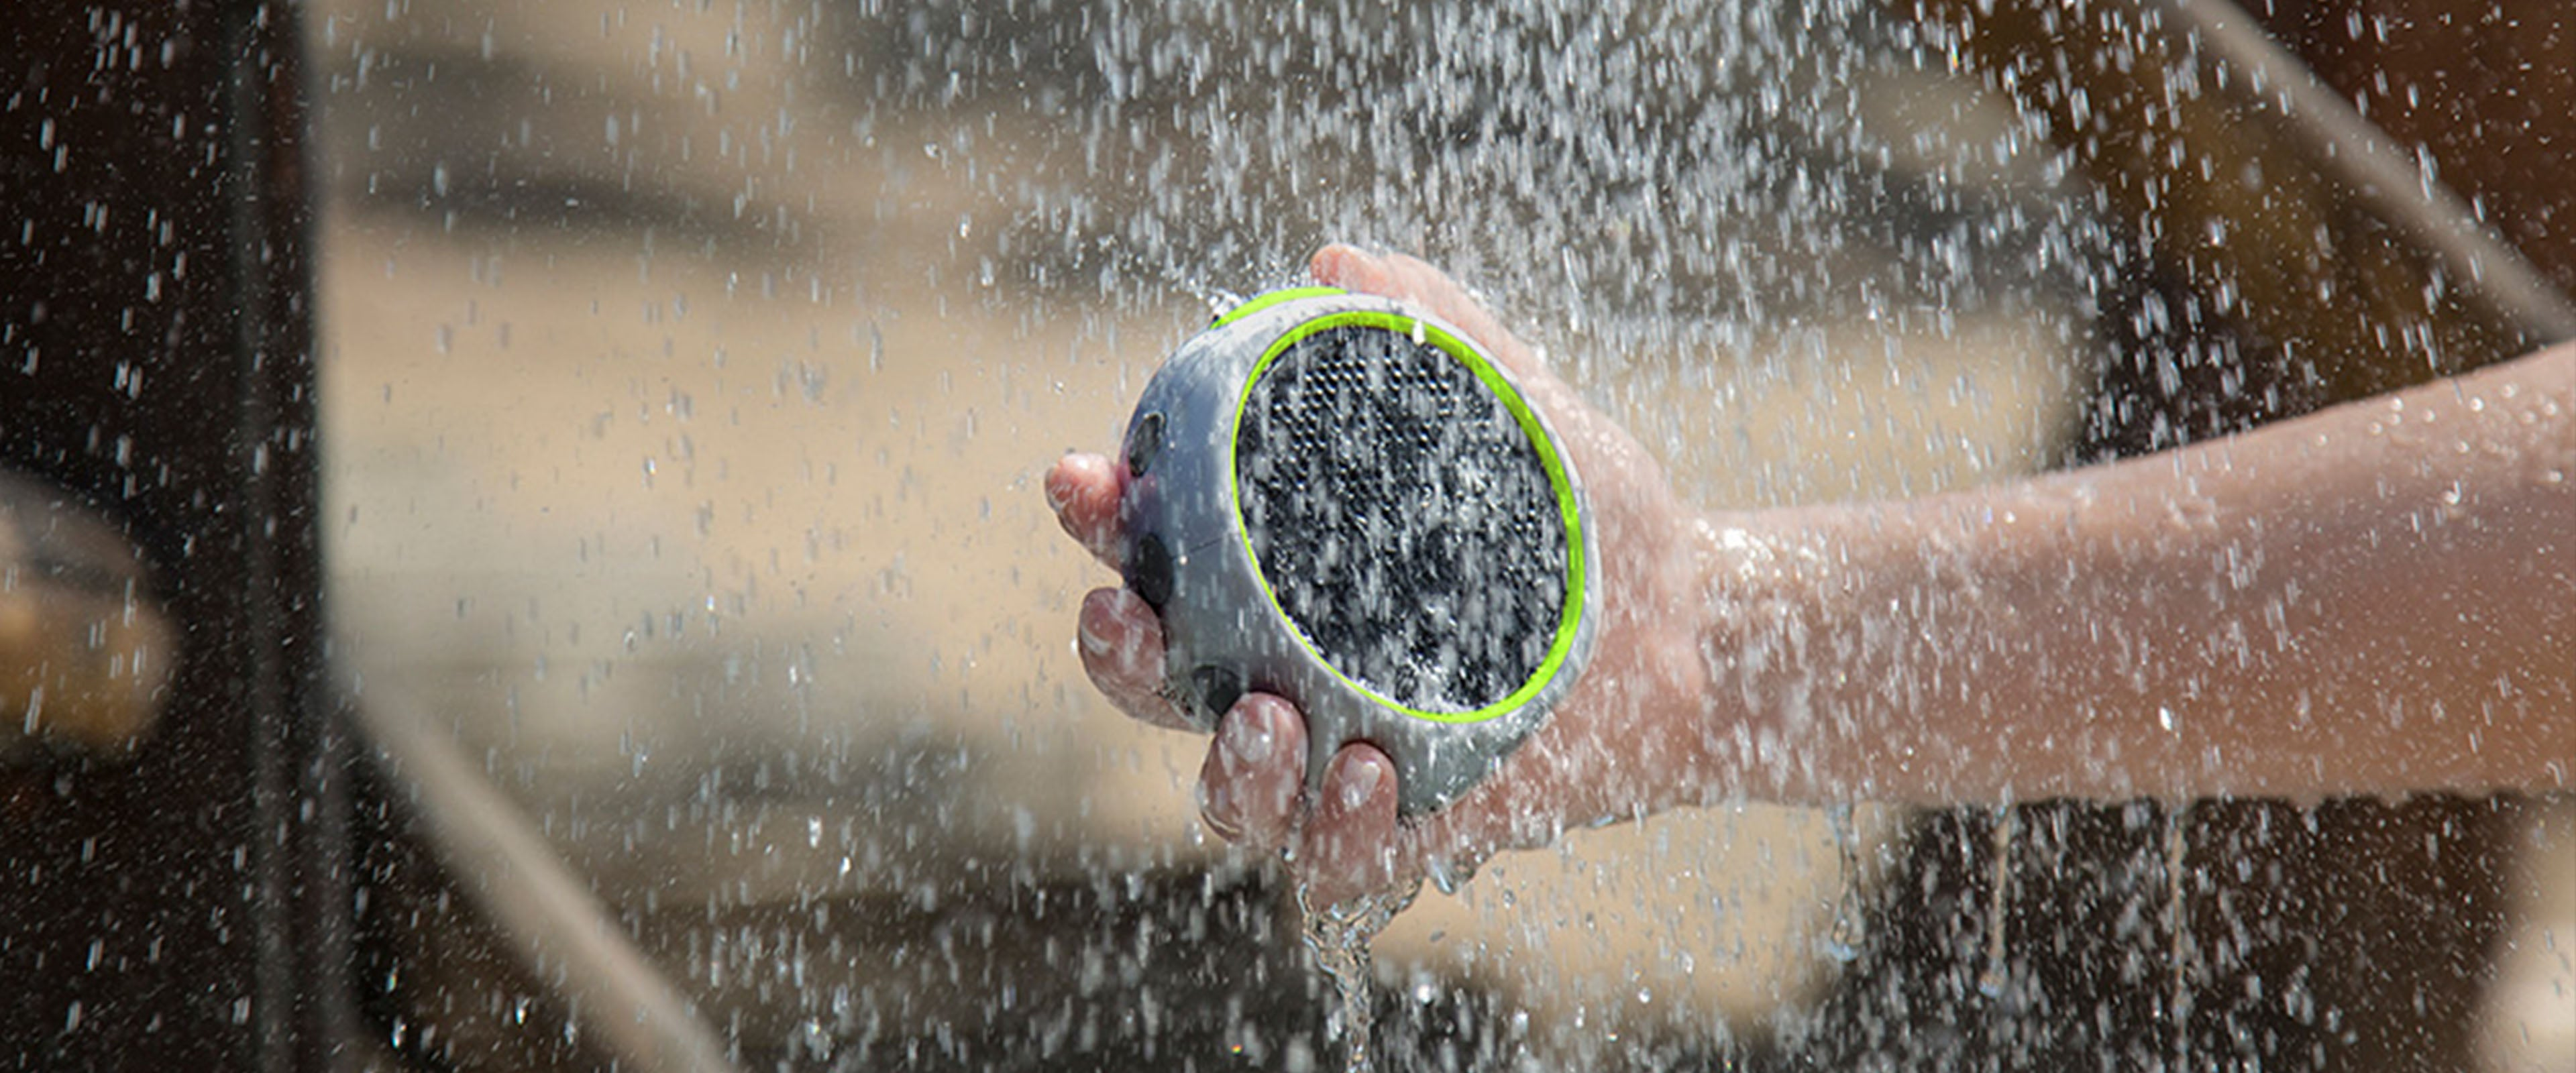 Person holding a Braven speaker in a rainfall of water